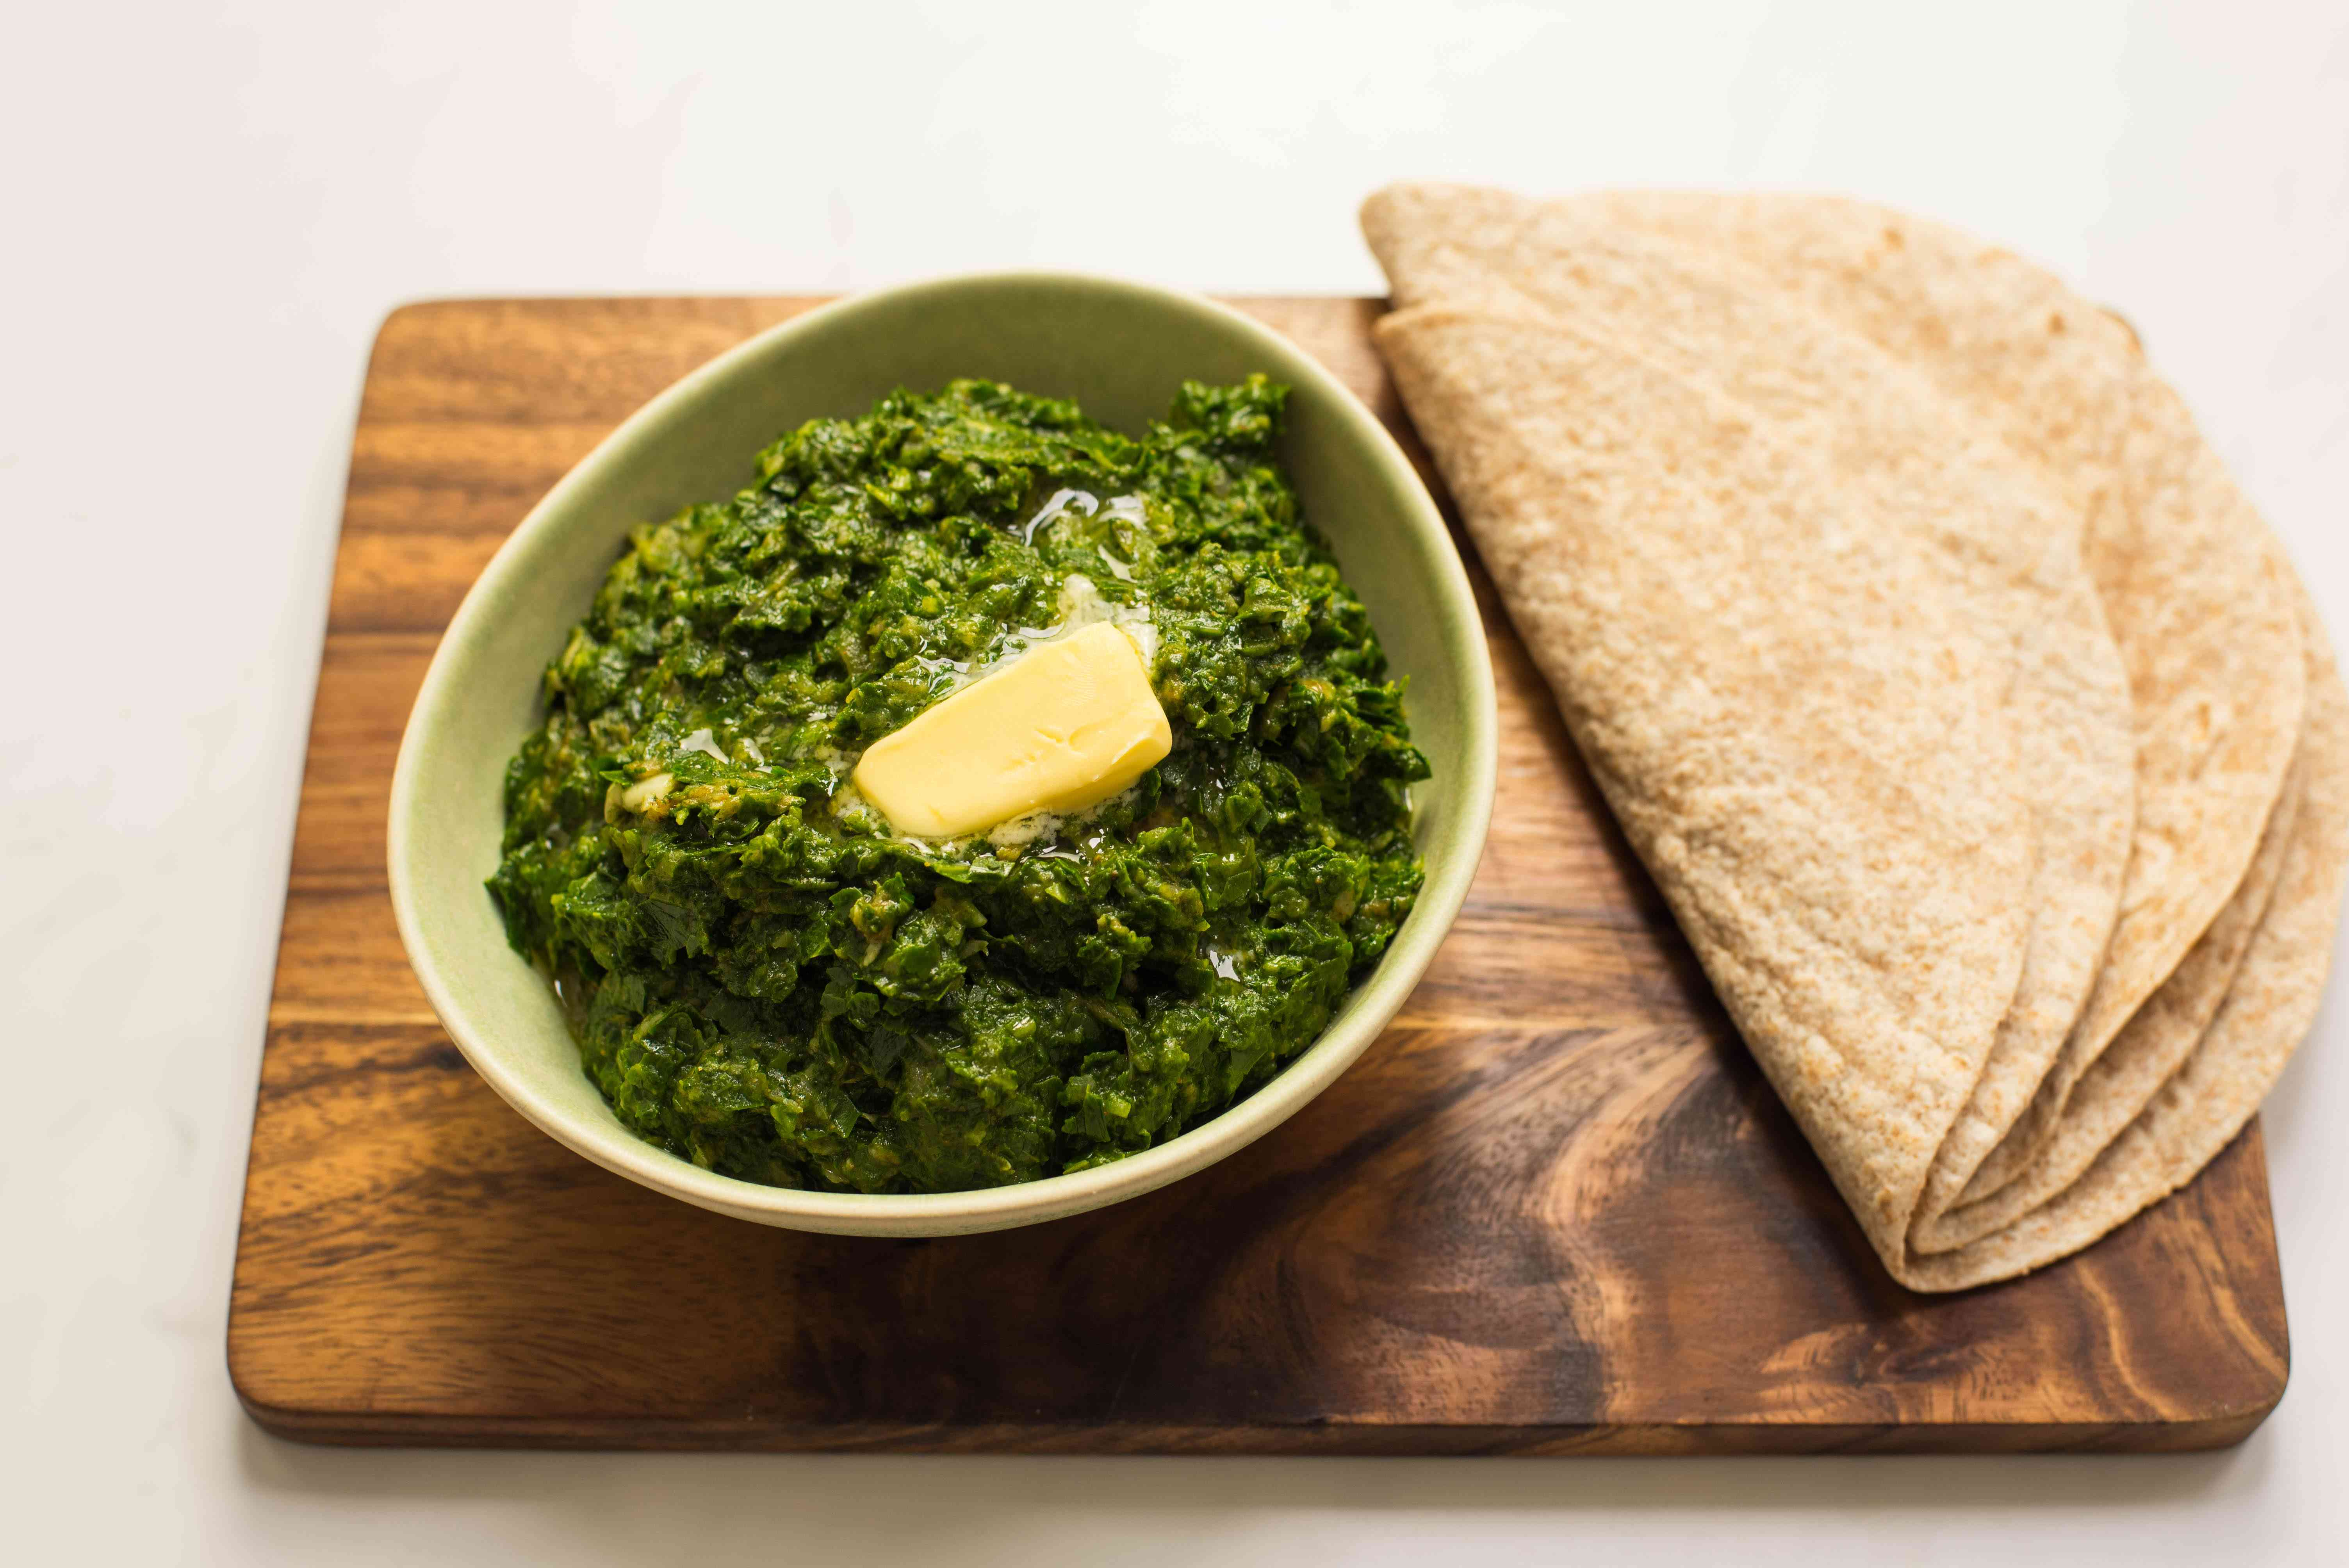 Saag garnished with butter with roti on the side